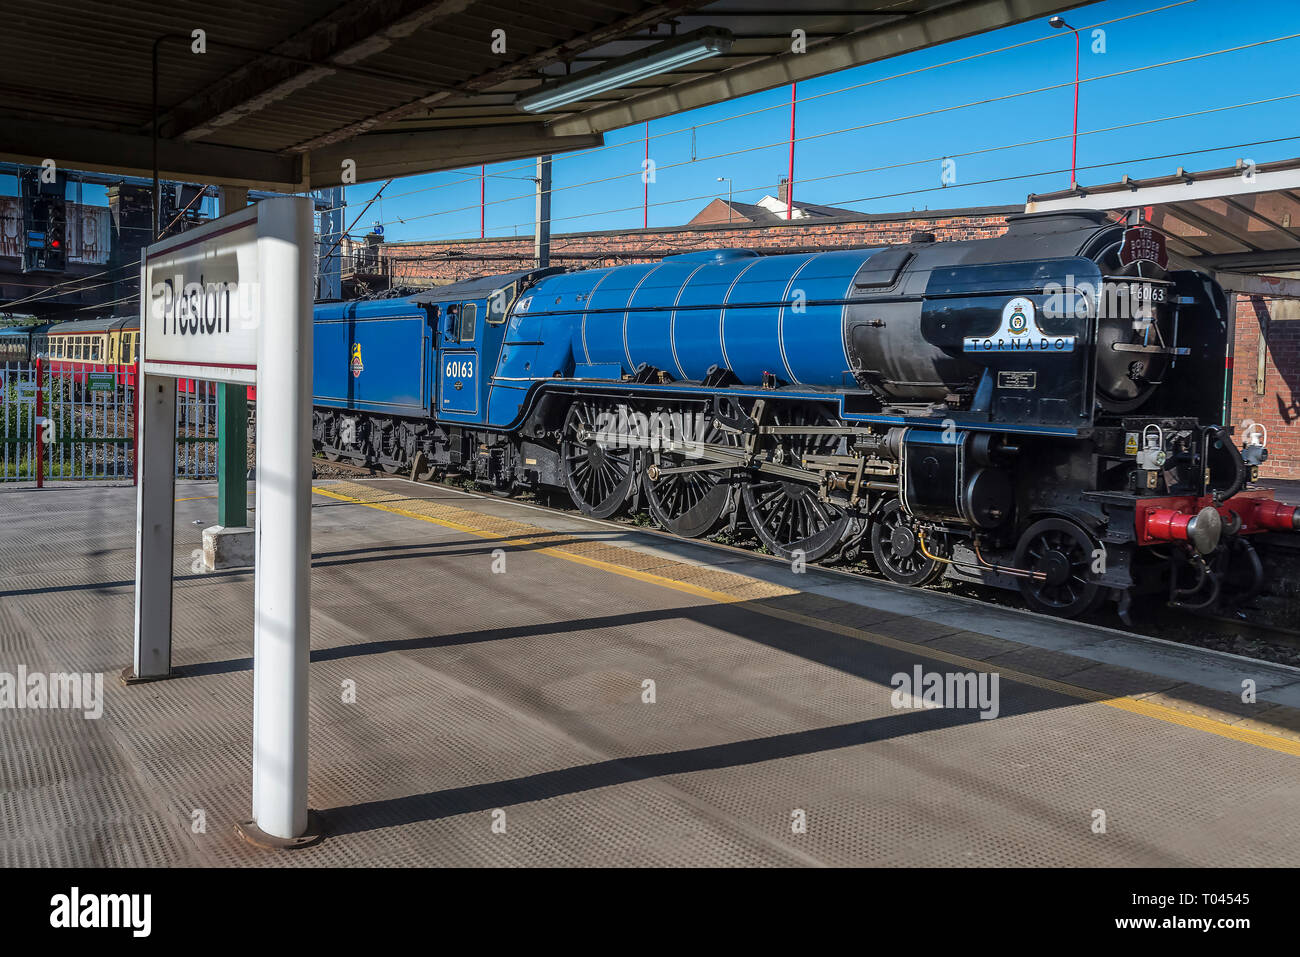 The steam A4 Pacific locomotive Tornado arrives at Preston station. - Stock Image